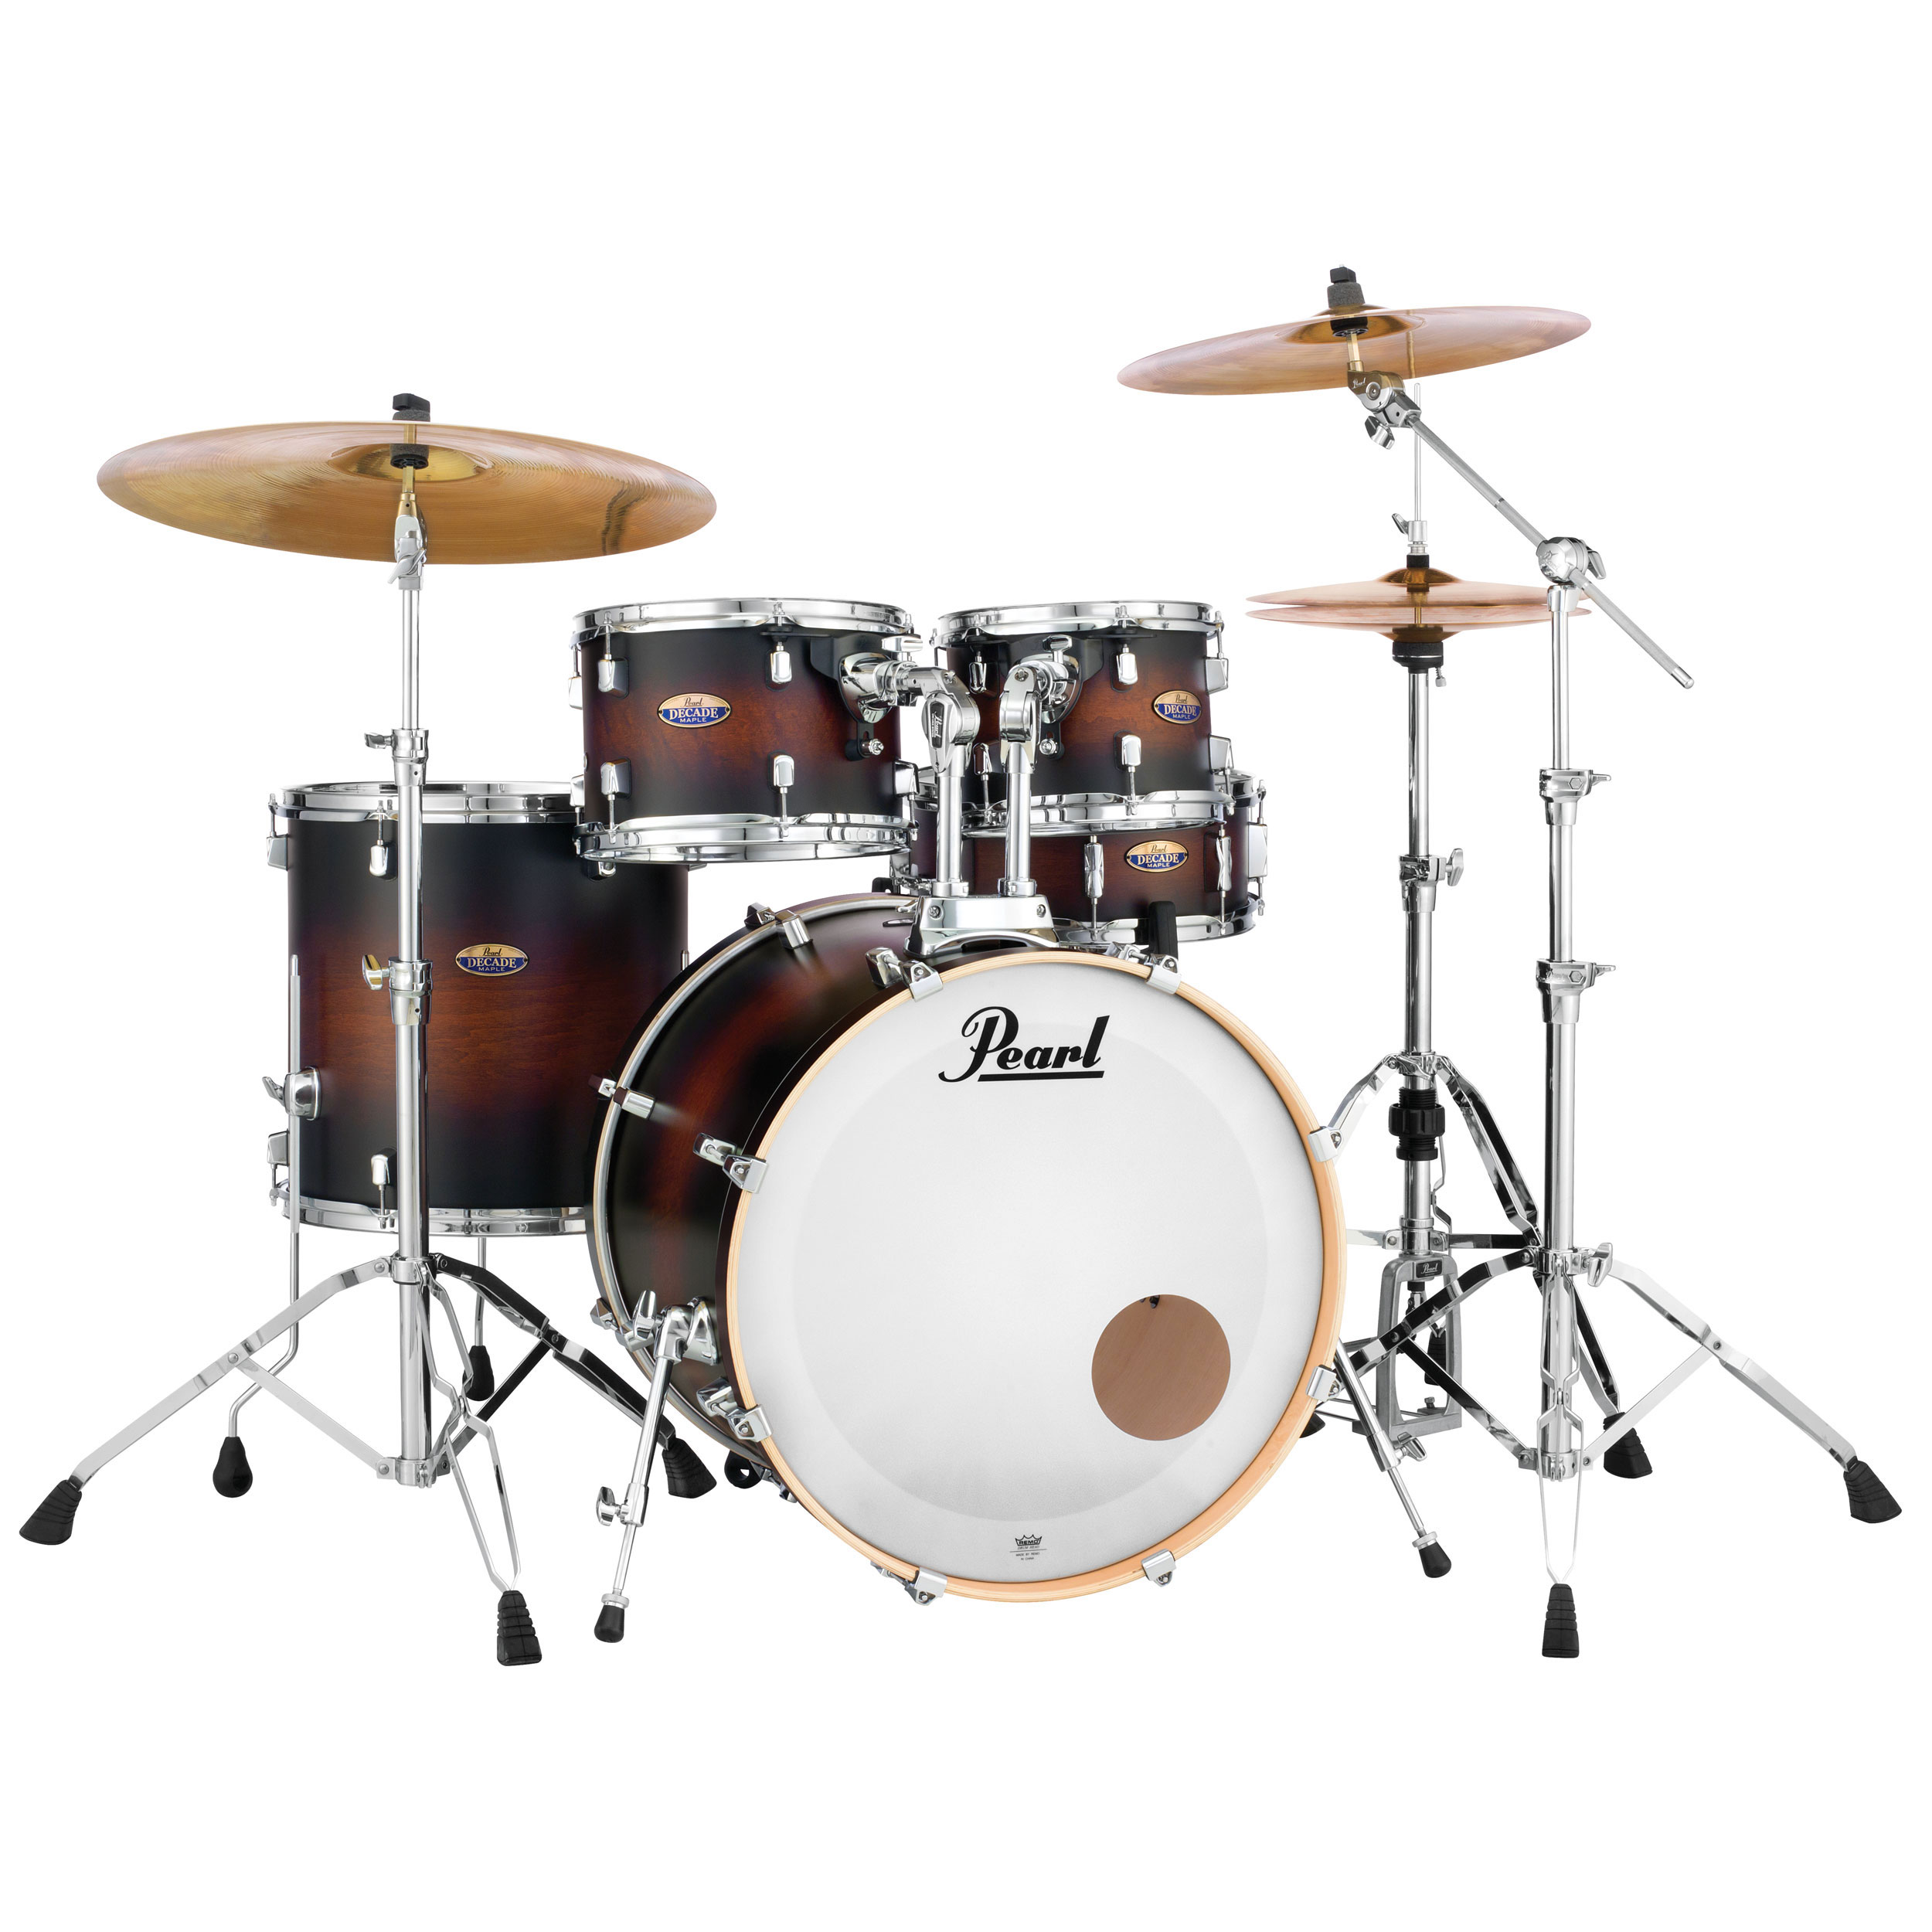 pearl decade maple 5 piece drum set shell pack 20 bass 10 12 14 toms 14 snare dmp905p c. Black Bedroom Furniture Sets. Home Design Ideas